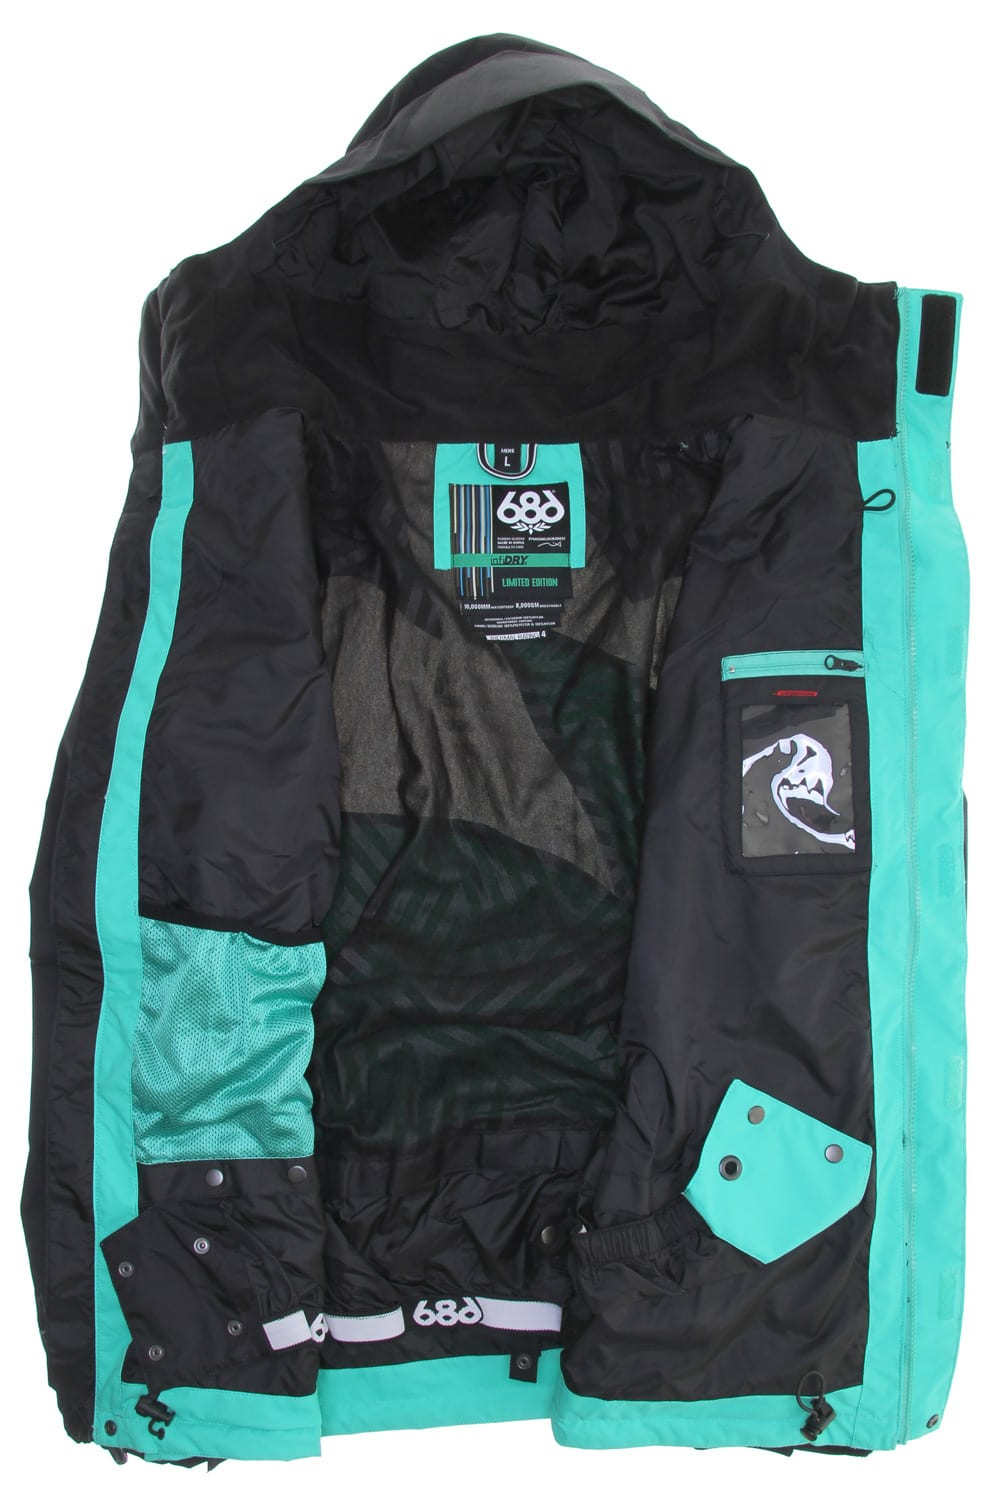 686 Snaggletooth Operation Snowboard Jacket